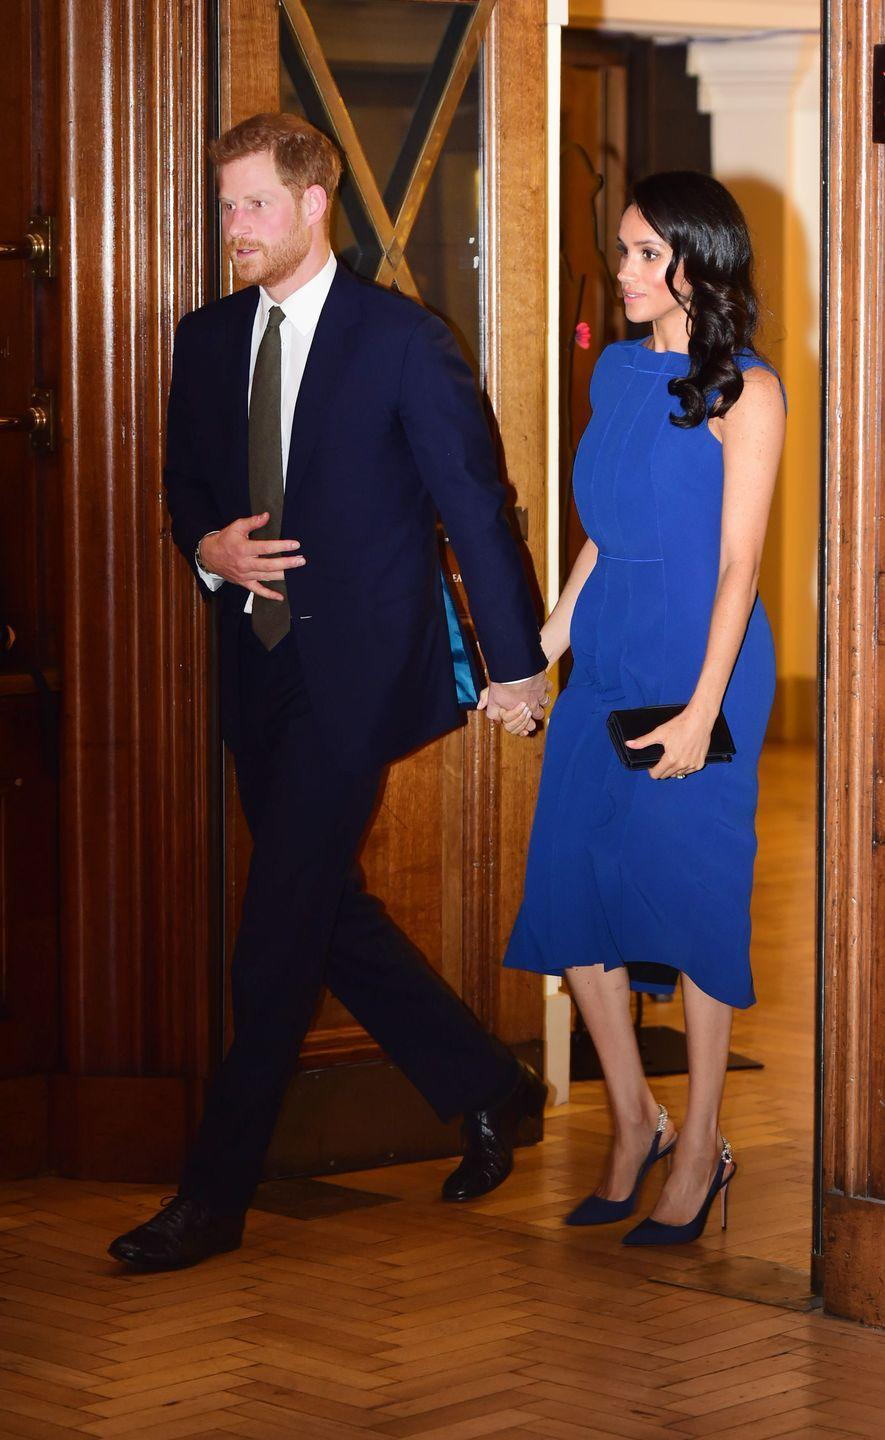 "<p><a href=""https://www.townandcountrymag.com/society/tradition/g22989148/prince-harry-meghan-markle-100-days-to-peace-gala-photos/"" rel=""nofollow noopener"" target=""_blank"" data-ylk=""slk:Harry and Meghan attended an evening of music"" class=""link rapid-noclick-resp"">Harry and Meghan attended an evening of music</a> in honor of the 100th anniversary of the final 100 days of World War I. </p>"